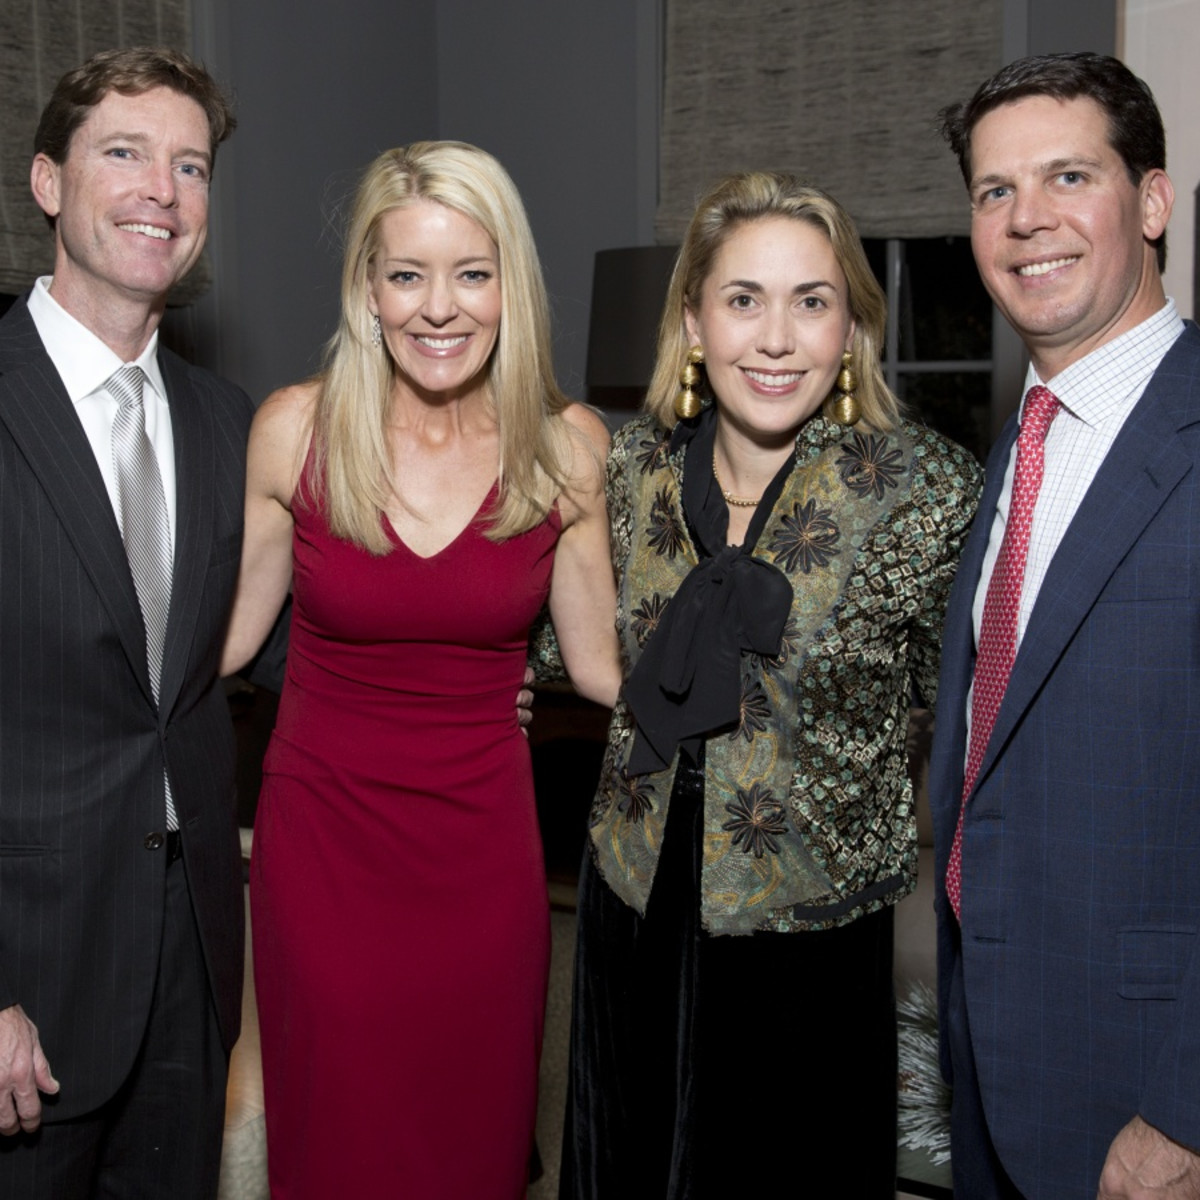 Houston, TCH Ambassadors holiday party, December 2017, Sam Pitts, Missy Pitts, Leslie Hull, Mark Hull